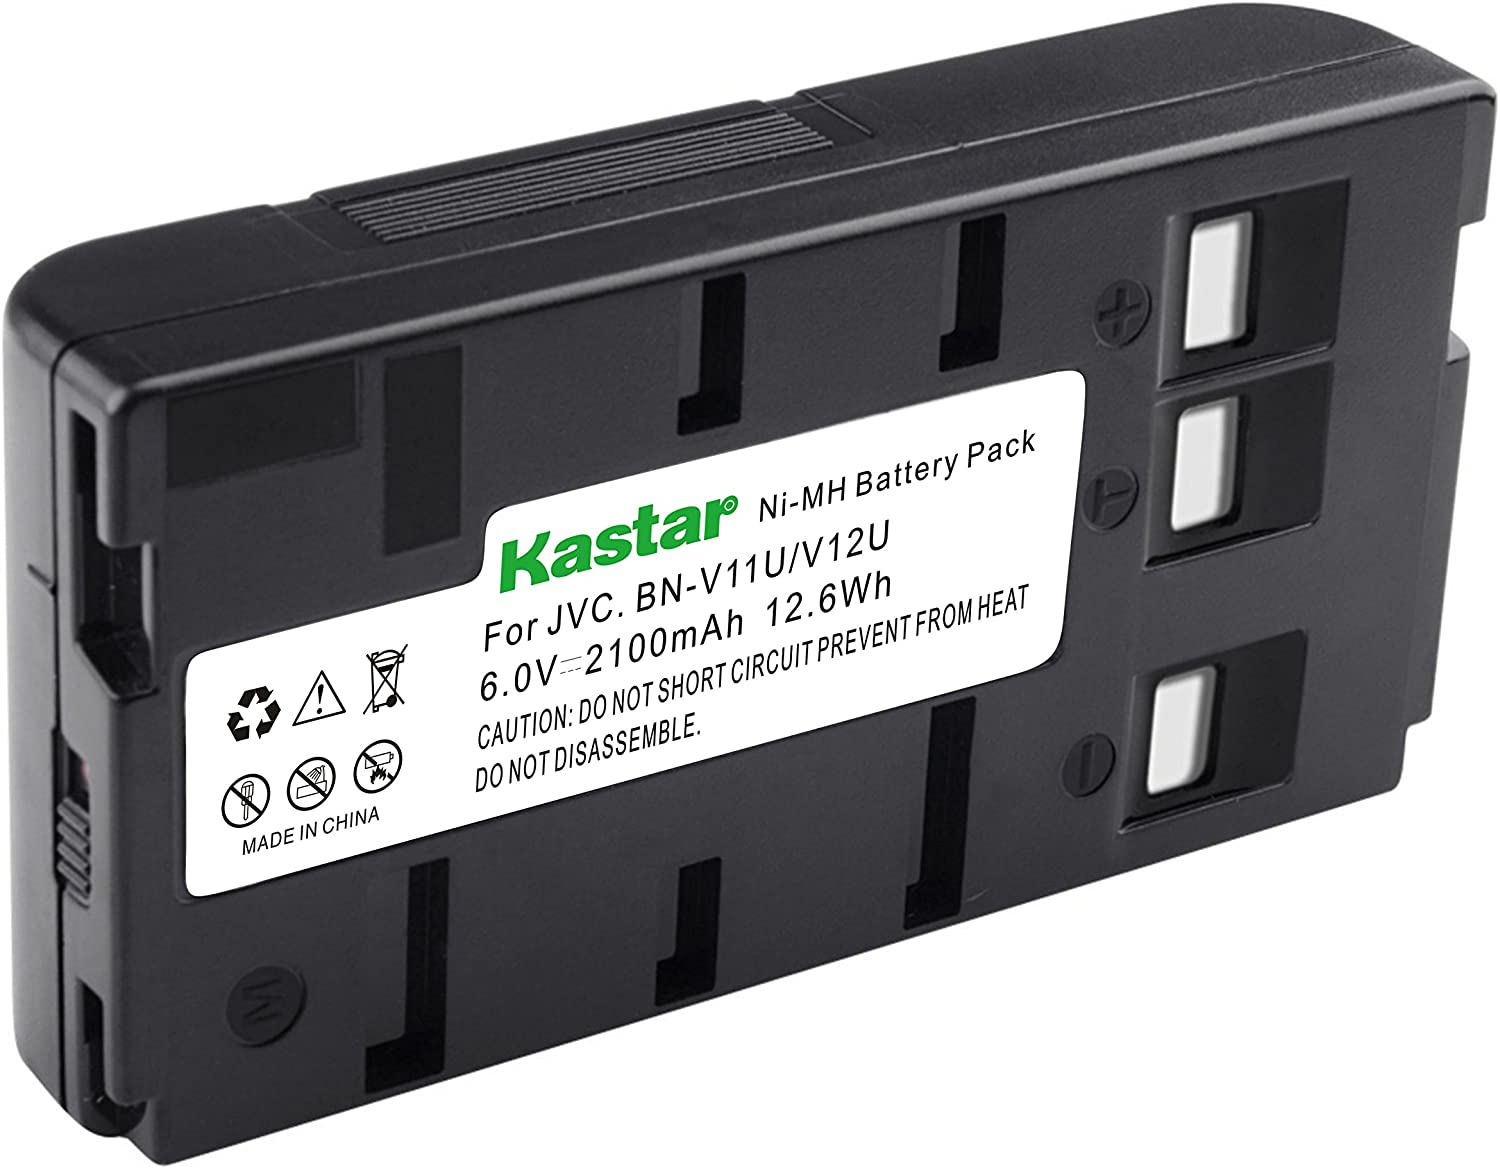 Kastar Video Camera Battery Replacement for Panasonic PV-BP18 PV-BP17 PV-BP15 HHR-V20A//1B HHR-V40A//1B VW-VBH1E VW-VBH2E VW-VBR1E VW-VBR2E VW-VBS1 VW-VBS1E VW-VBS2 VW-VBS2E